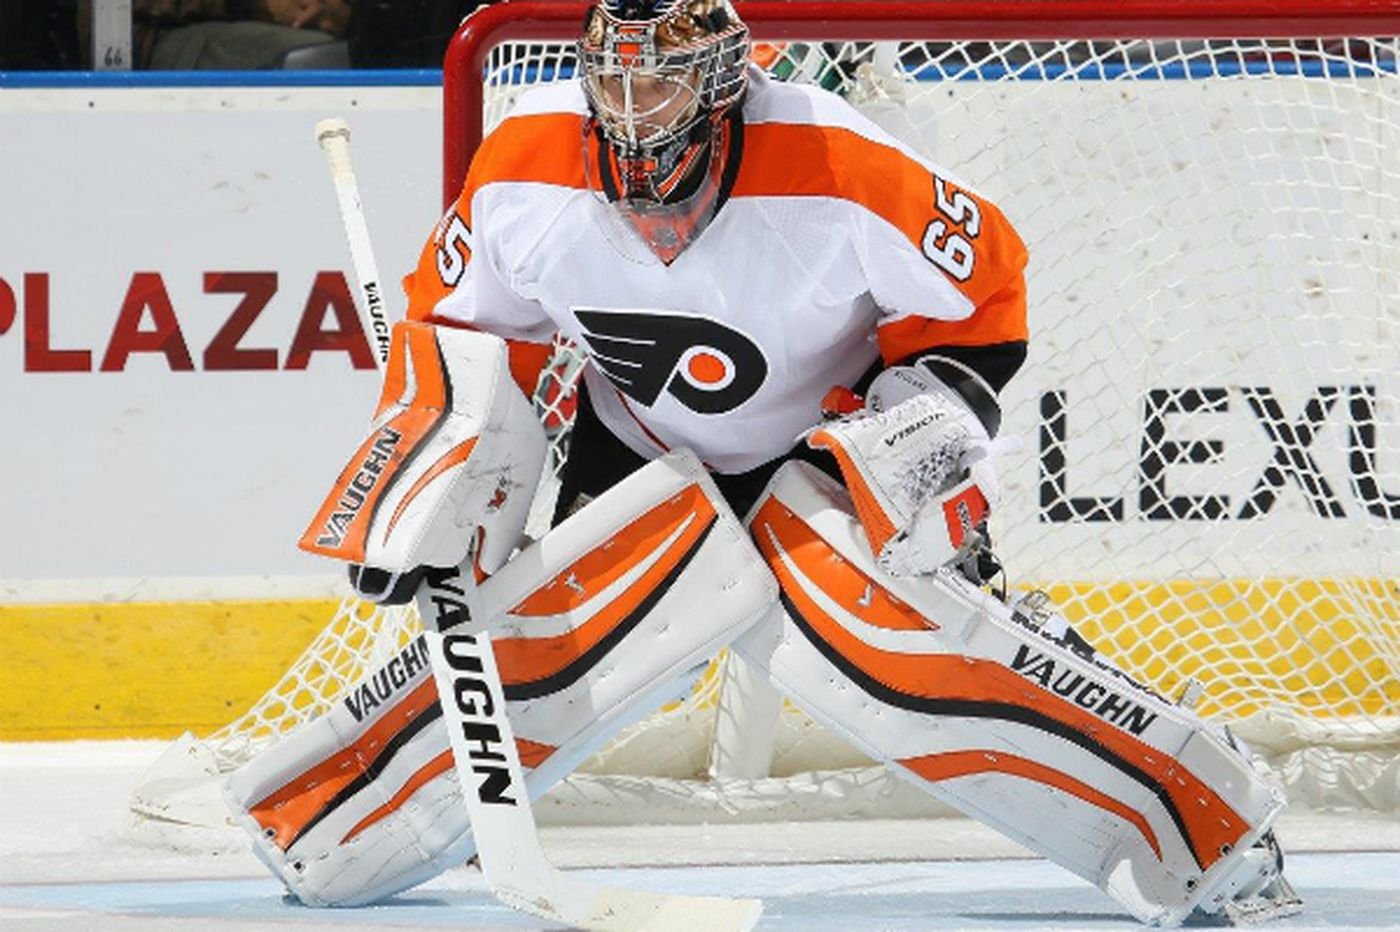 With Mason hurt, Flyers' goaltending situation is in flux